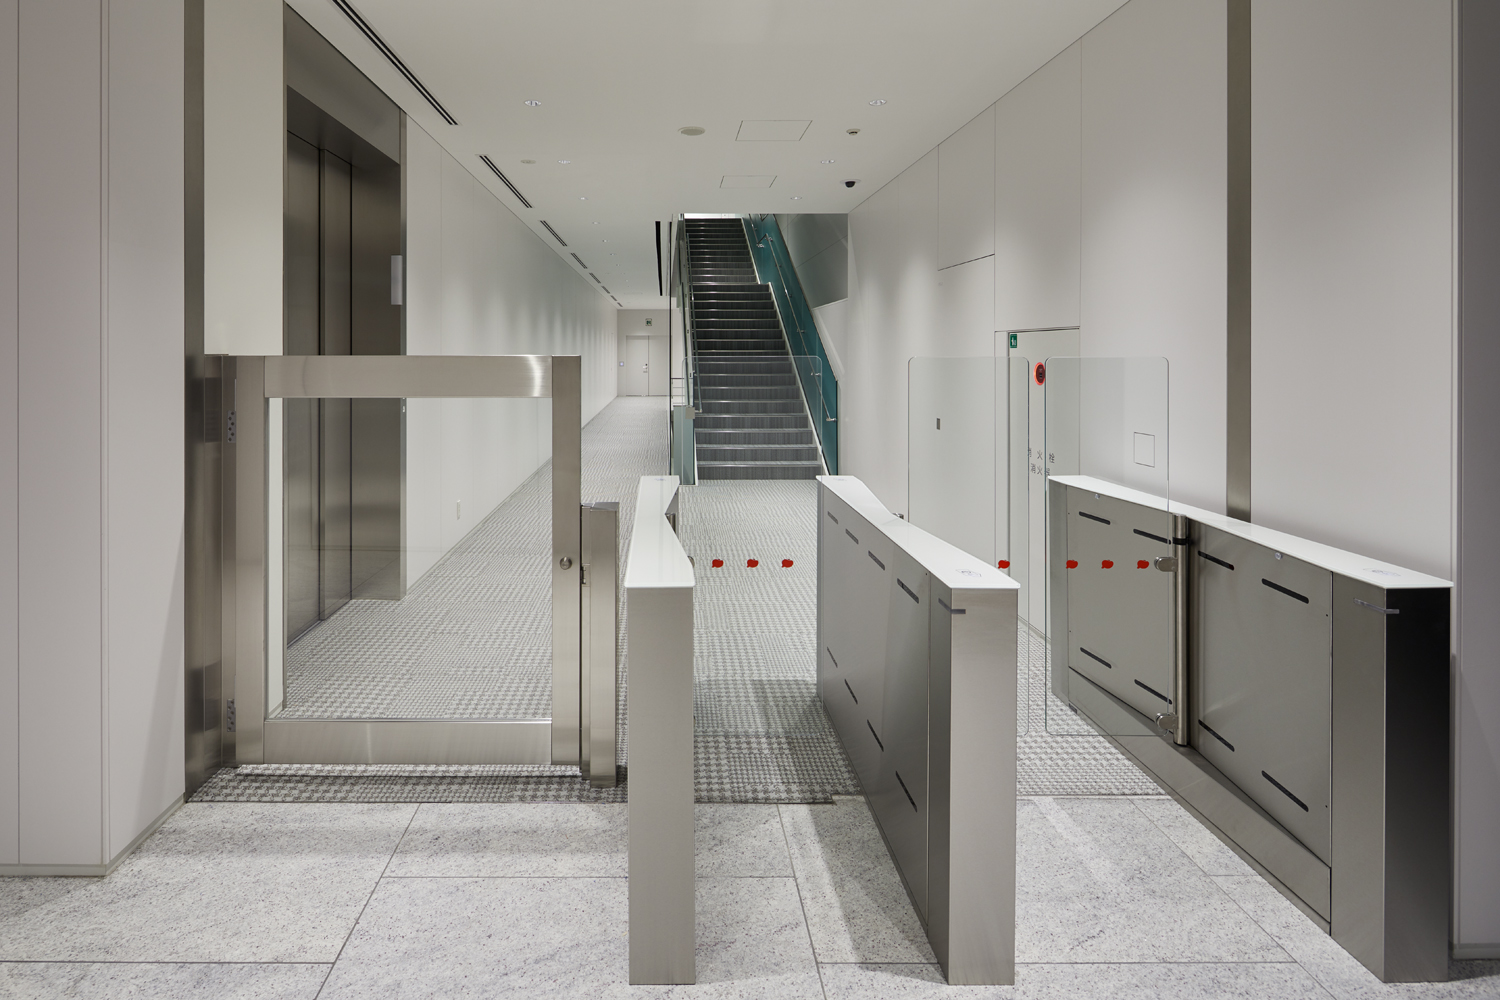 Fastlane turnstiles installed in Toei Animation HQ Japan